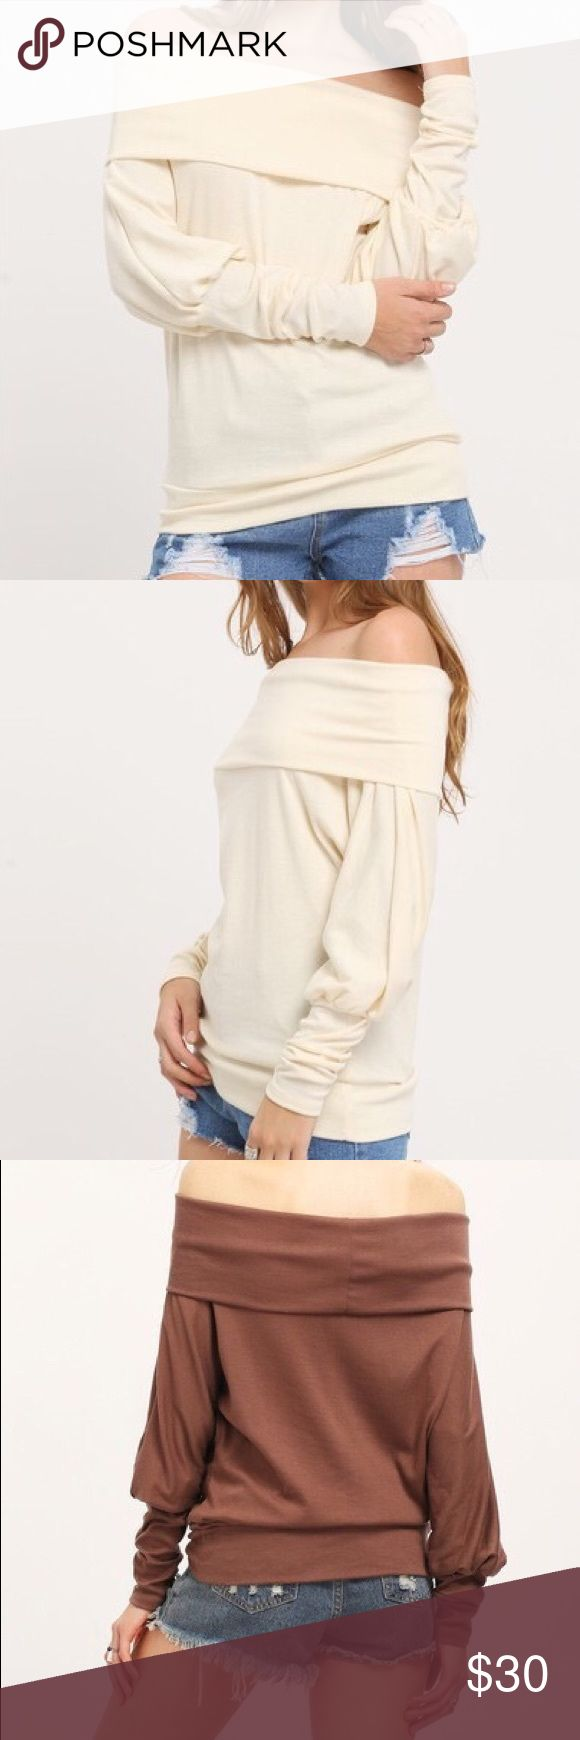 """Coming Creamy open shoulder batwing T shirt S Bust 41"""" length 23.6"""" M Bust 42.5"""" length 24"""" L Bust 44"""" length 24.8"""" XL 45.5"""" length 25.2"""" Tops Tees - Long Sleeve"""